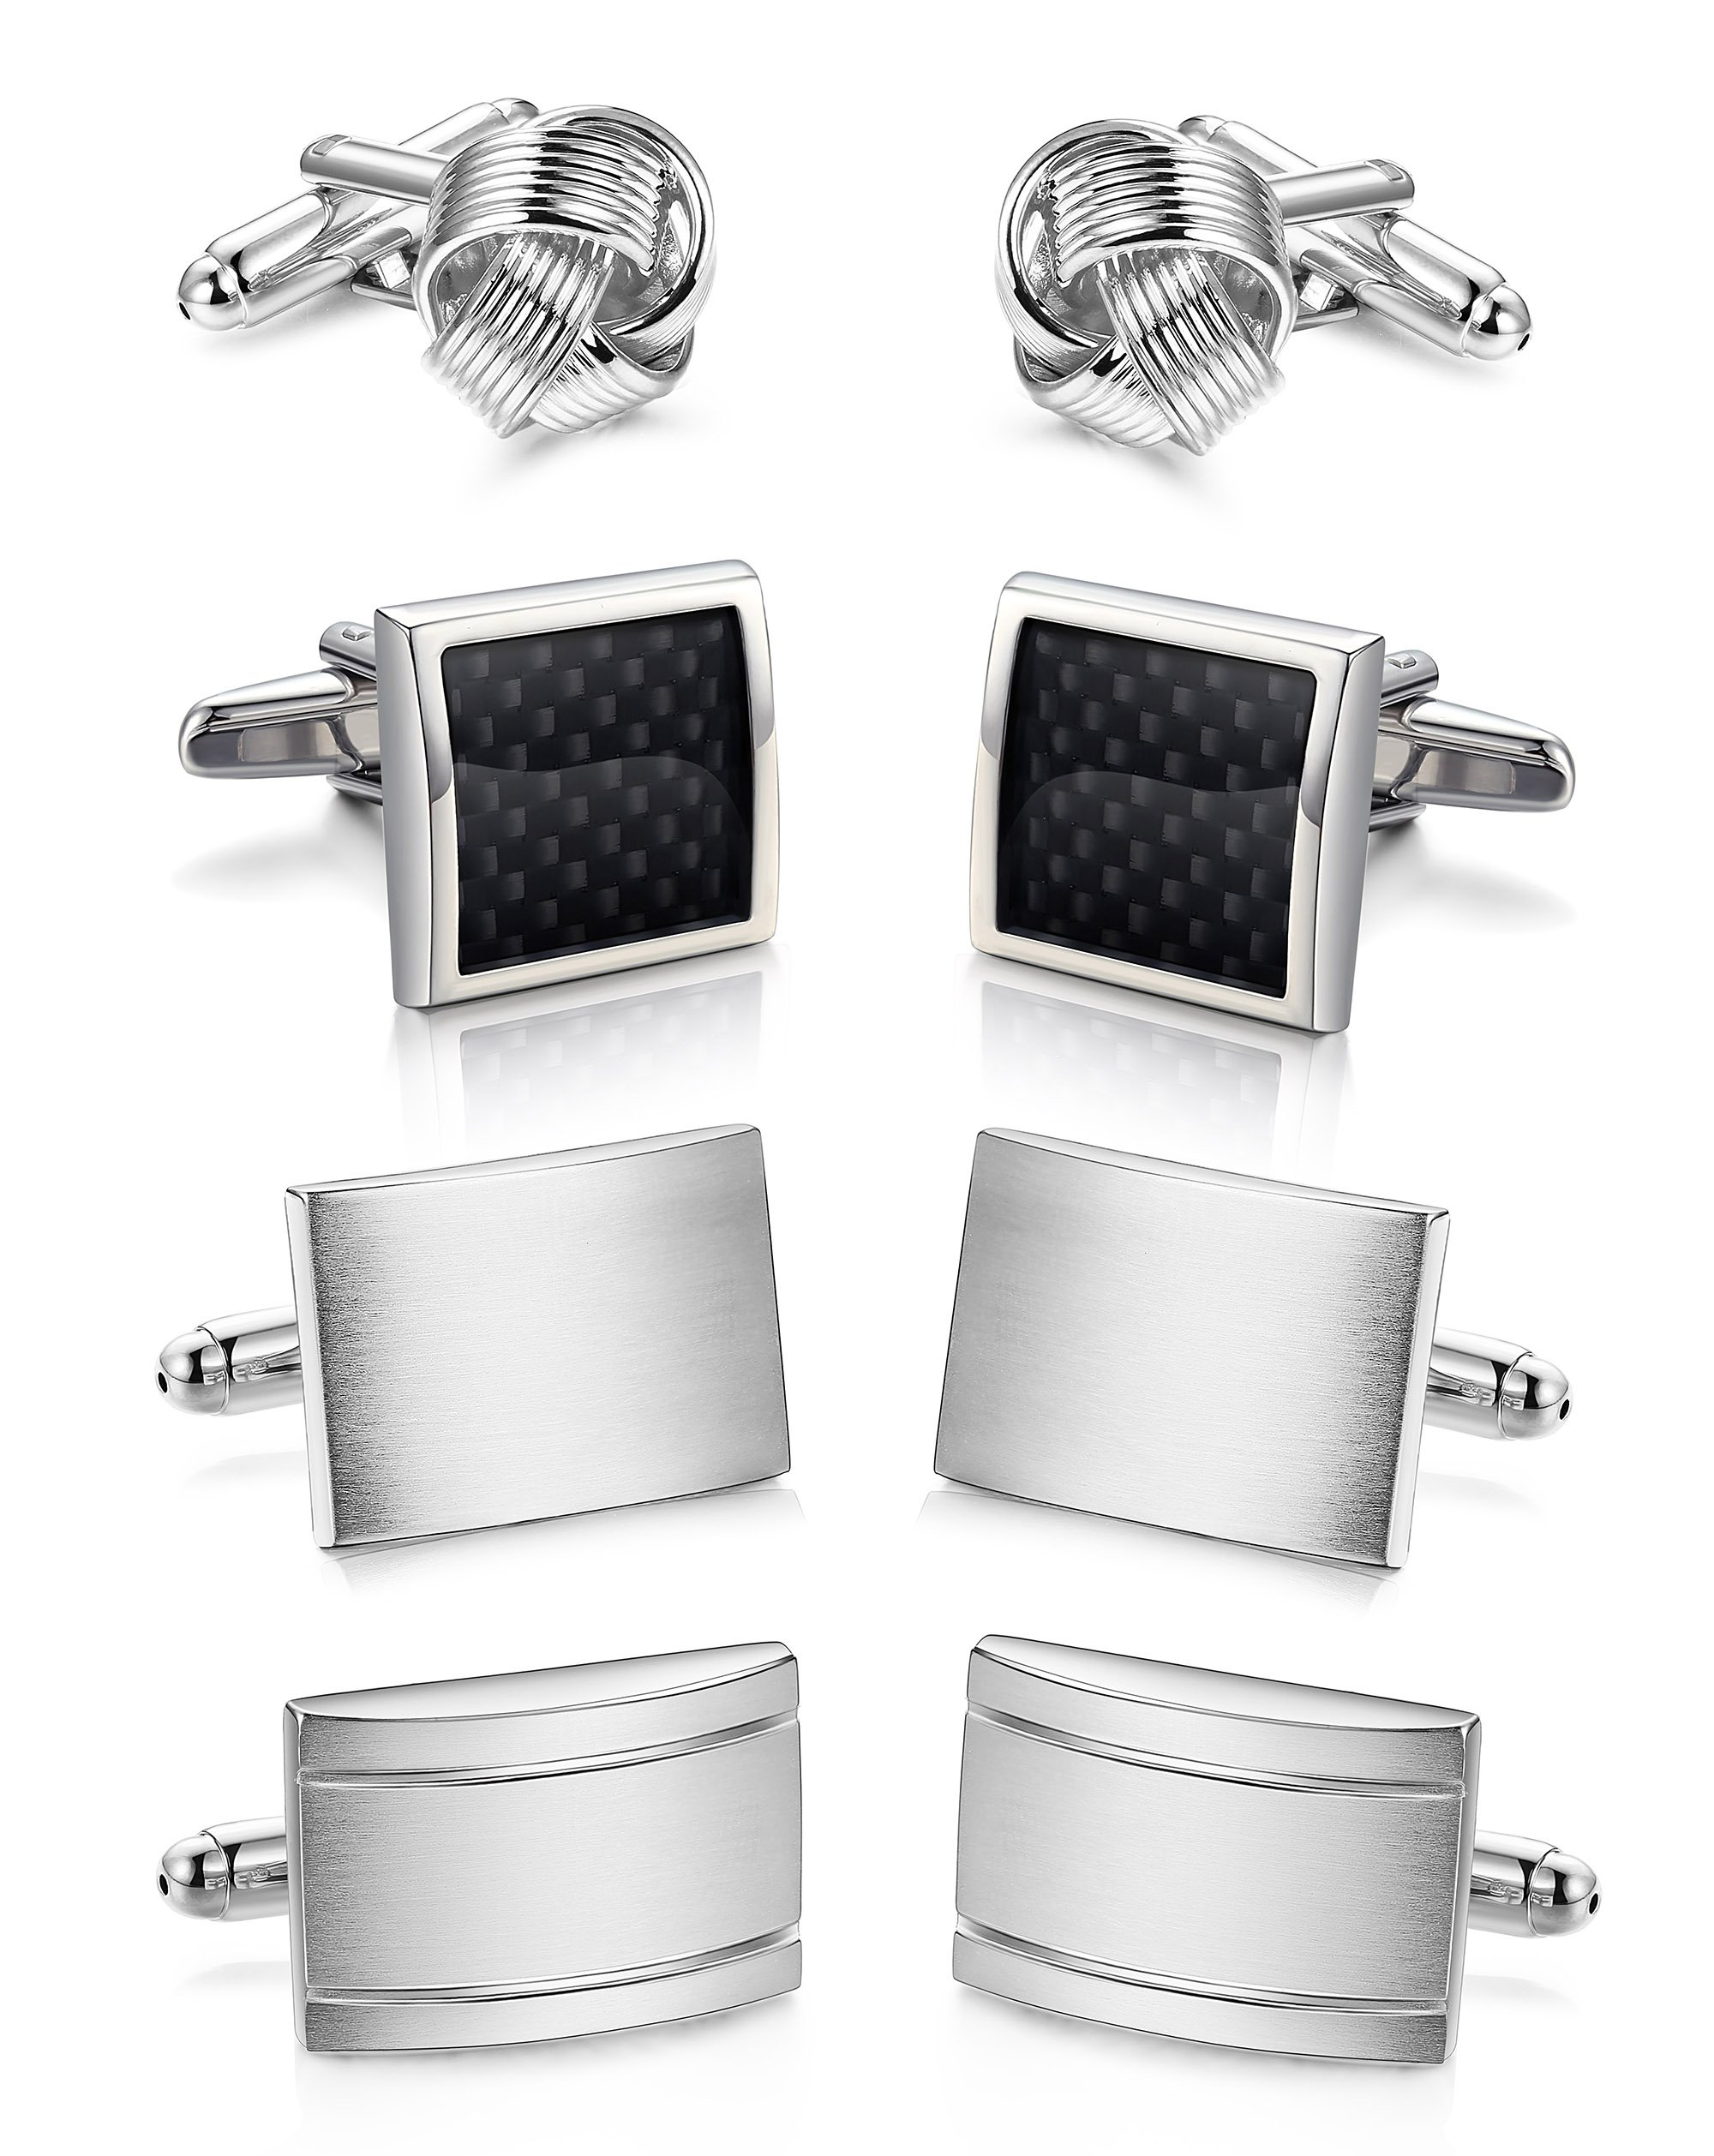 ORAZIO 4 Pairs Cufflinks for Men Cufflink Set for Tuxedo Shirts Business Wedding Silver Tone